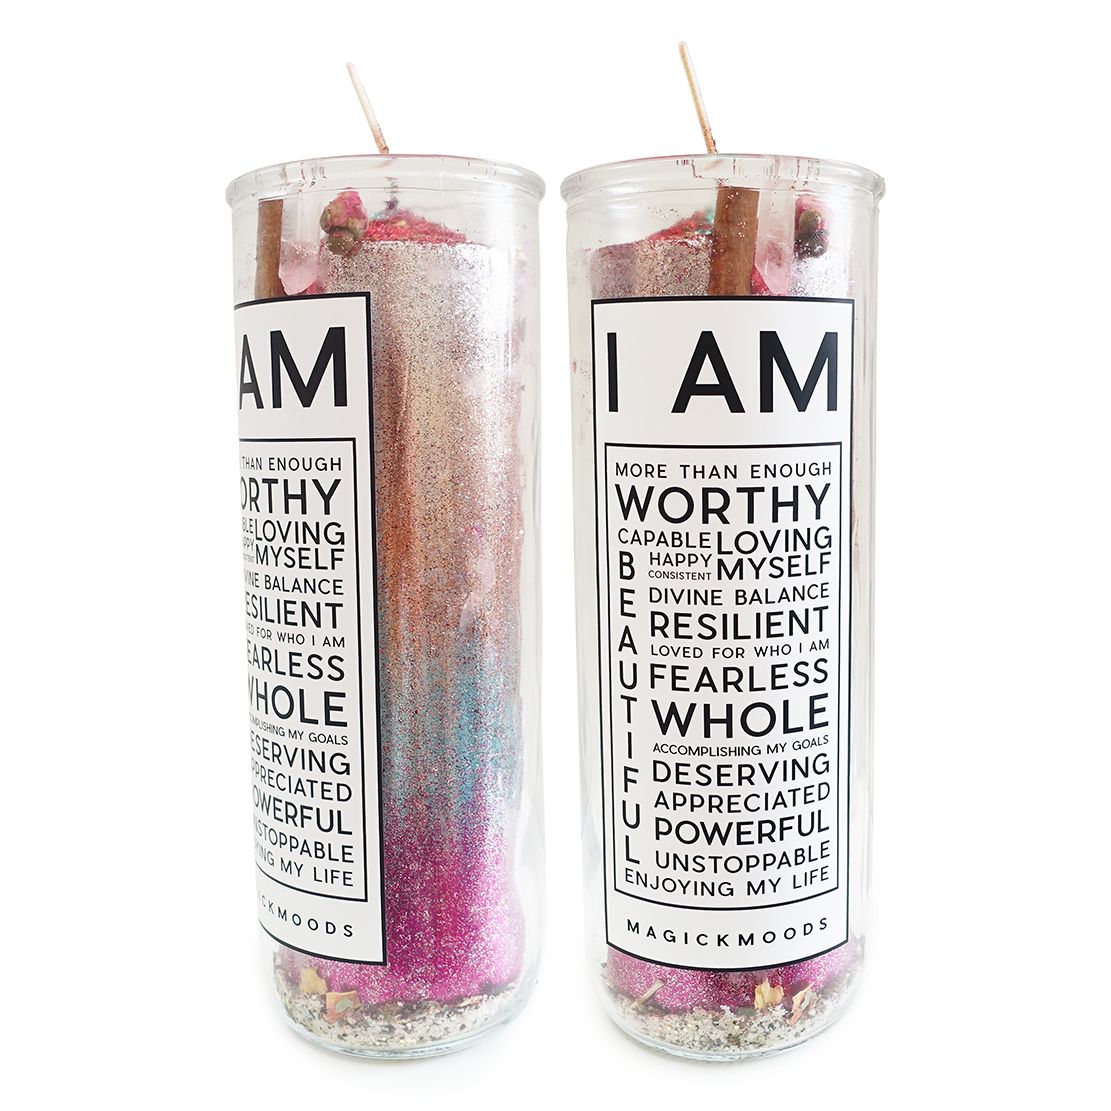 I Am Enough 7-Day Meditation Candle - PREORDER - Ships by 12/15